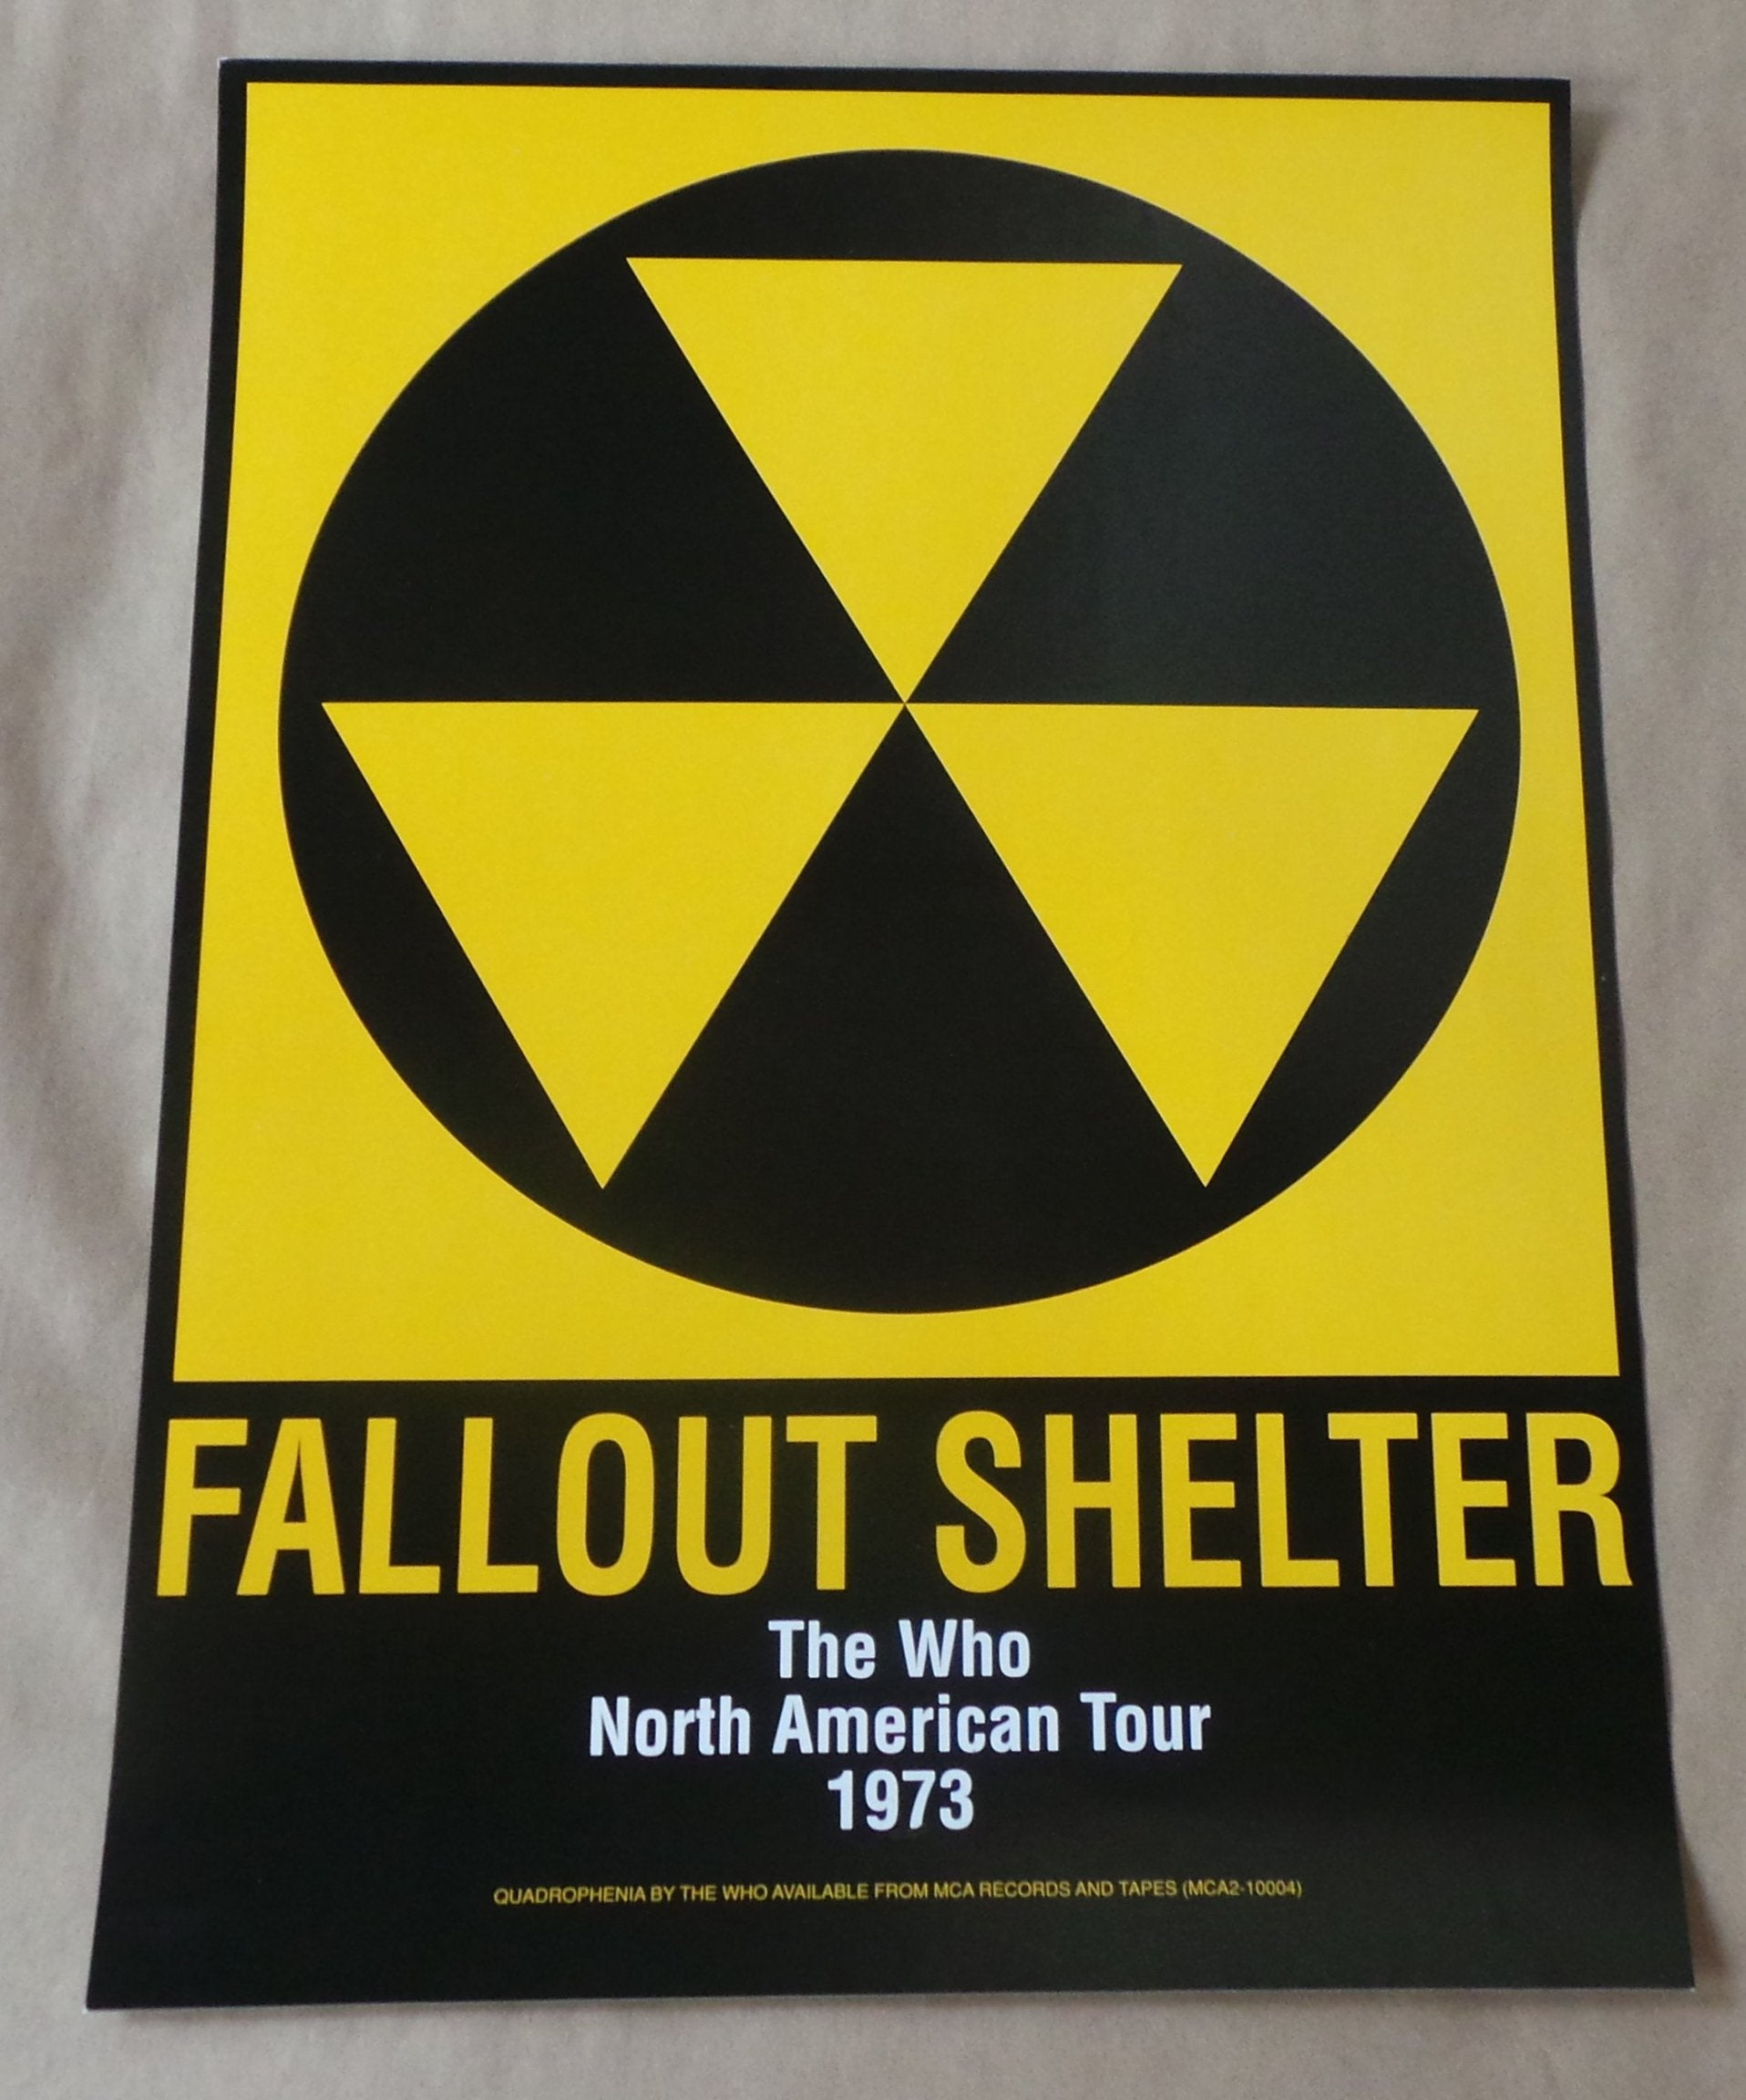 THE WHO Fallout Shelter US 1973 North American Tour Promo POSTER Quadrophenia